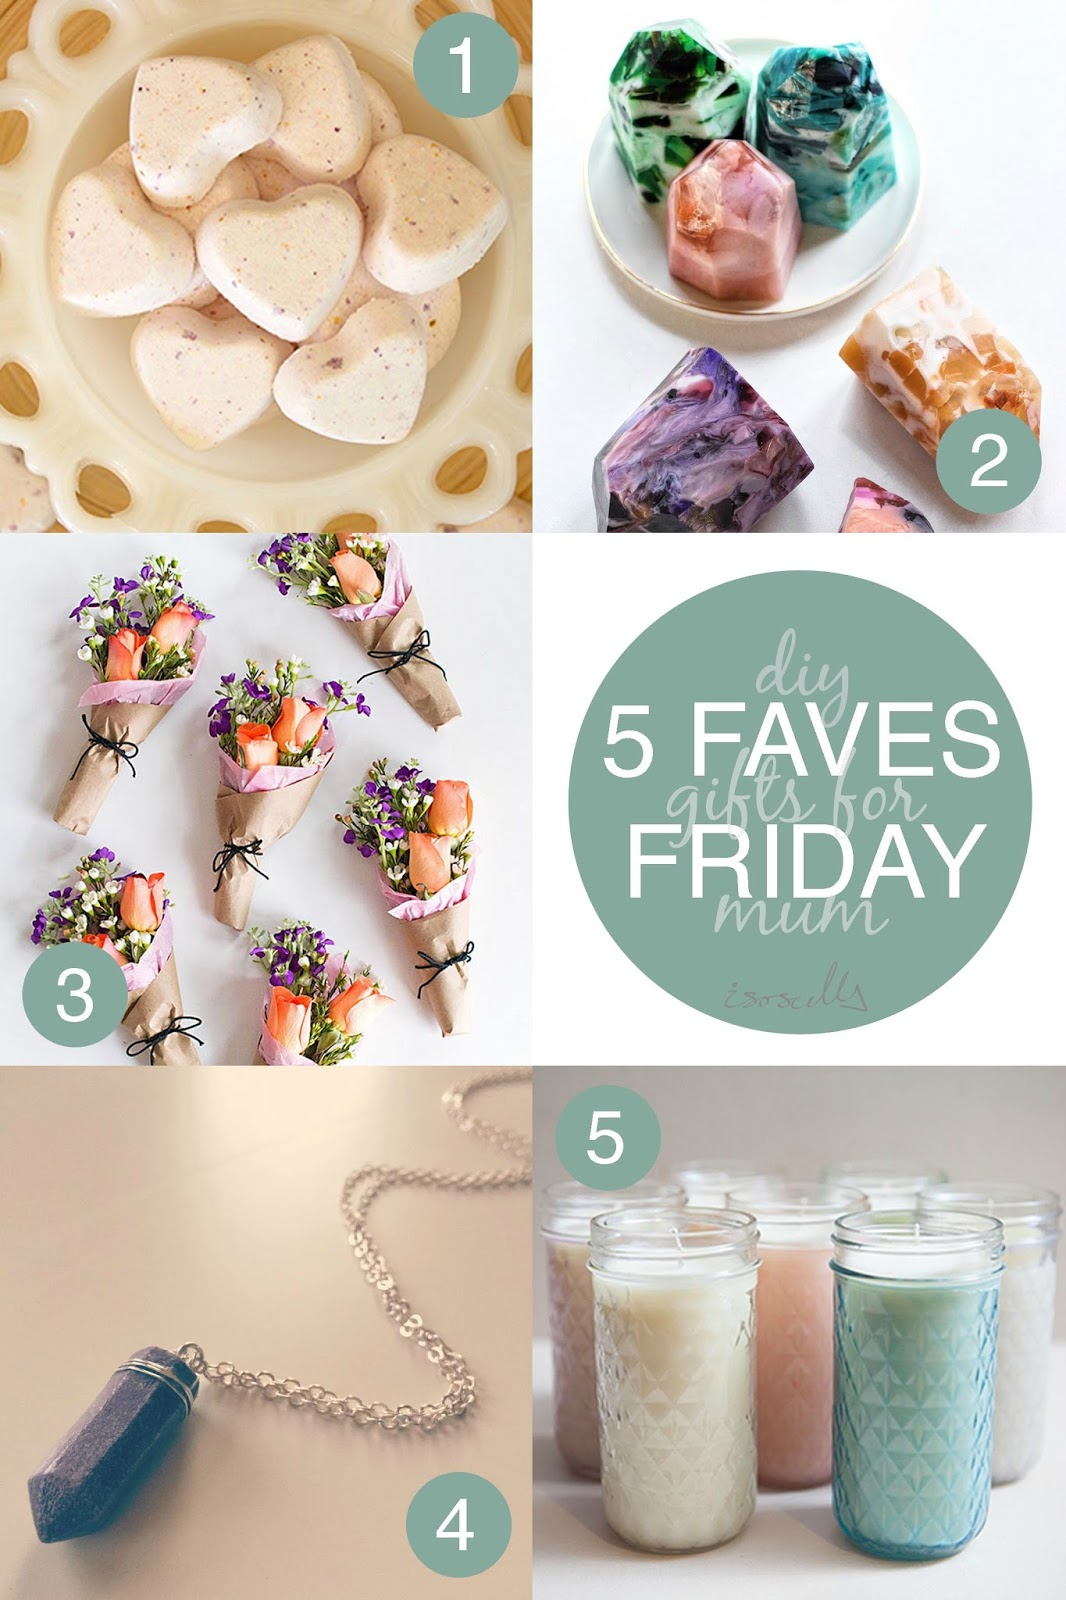 Five Faves Friday - DIY Gifts for Mum